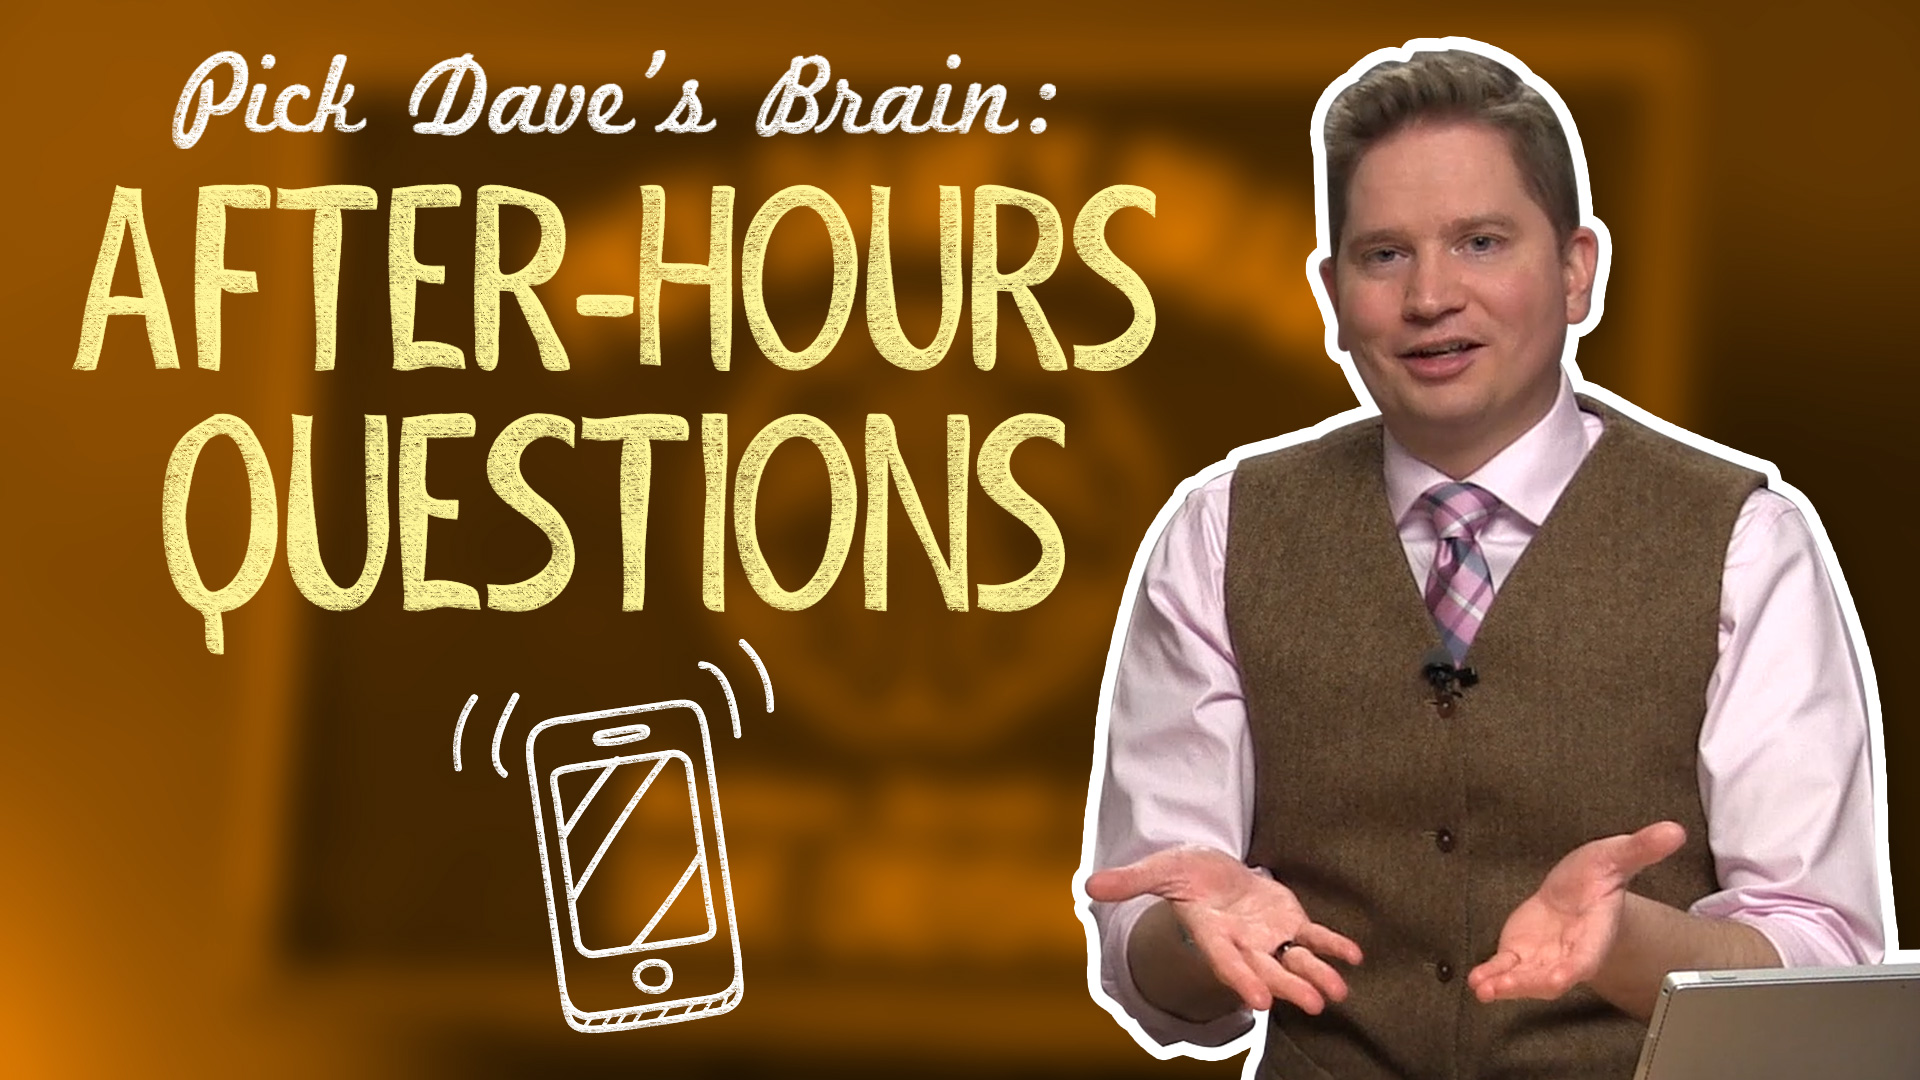 How to Stop Answering After-Hours Questions – Pick Dave's Brain